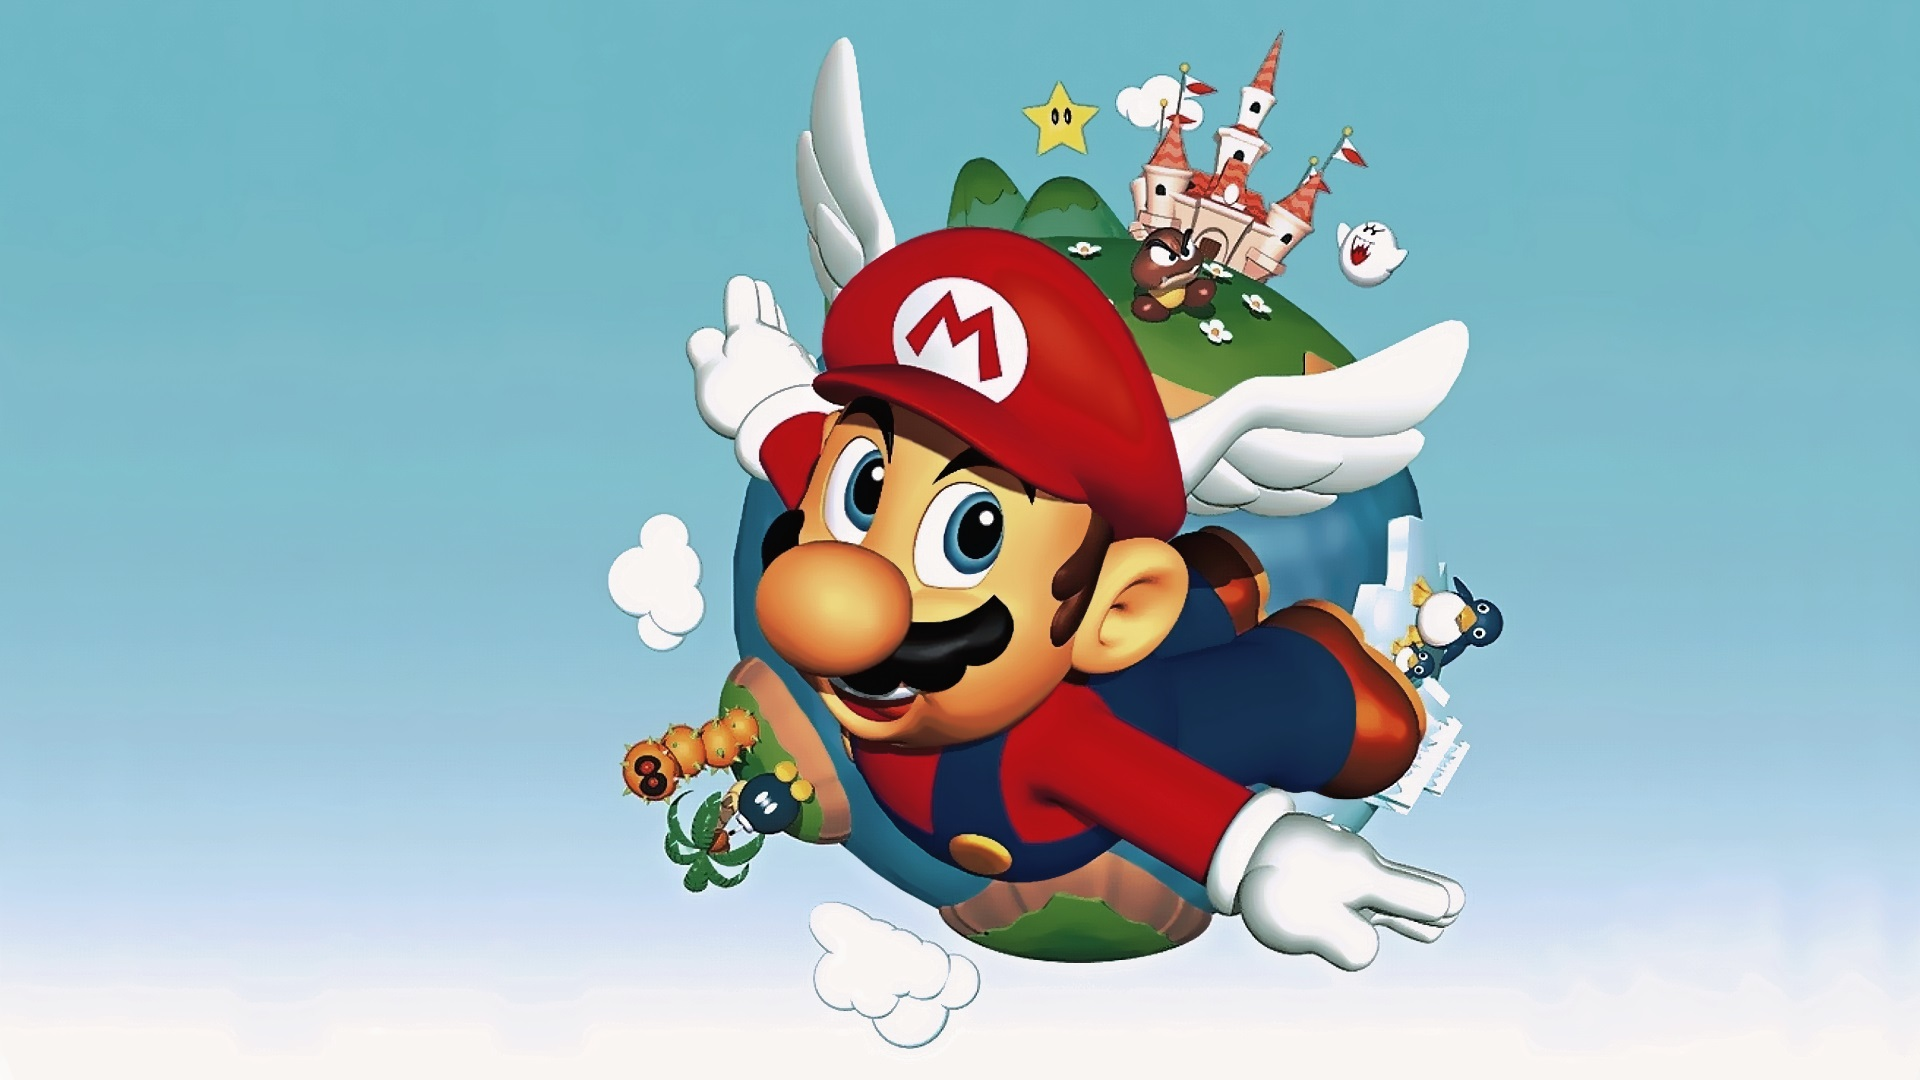 Video Games 3d Wallpaper Super Mario 64 Details Launchbox Games Database